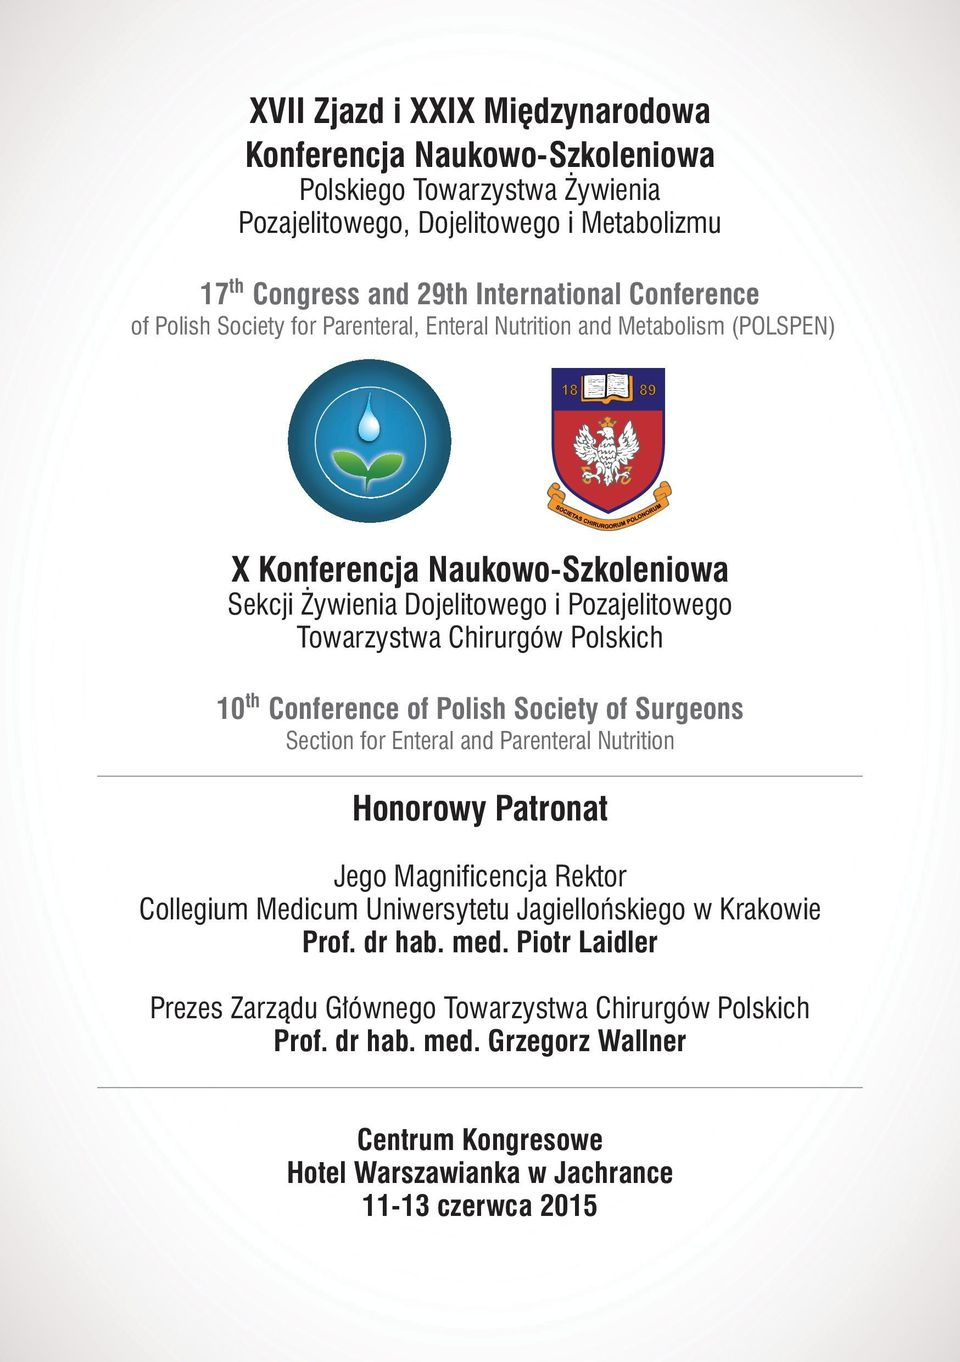 Conference of Polish Society of Surgeons Section for Enteral and Parenteral Nutrition Honorowy Patronat Jego Magnificencja Rektor Collegium Medicum Uniwersytetu Jagiellońskiego w Krakowie